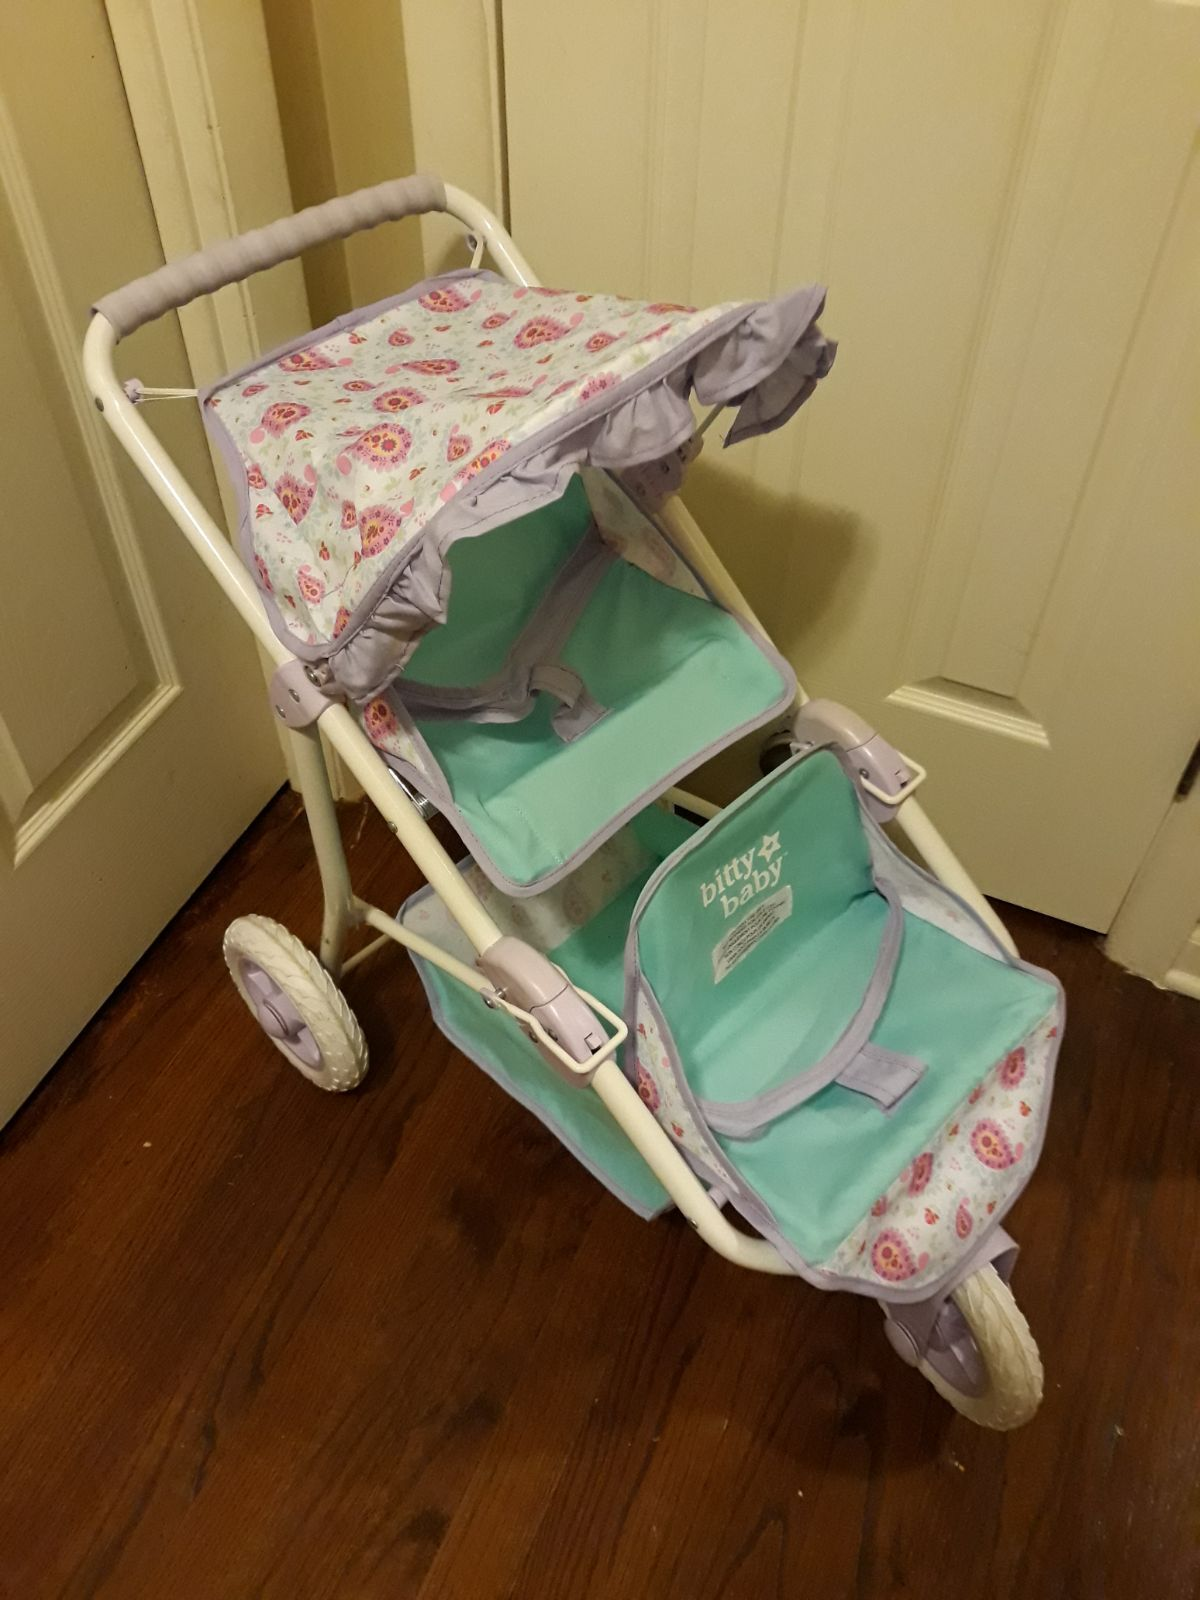 American Girl Bitty Baby Twin/Double Stroller. Daughter